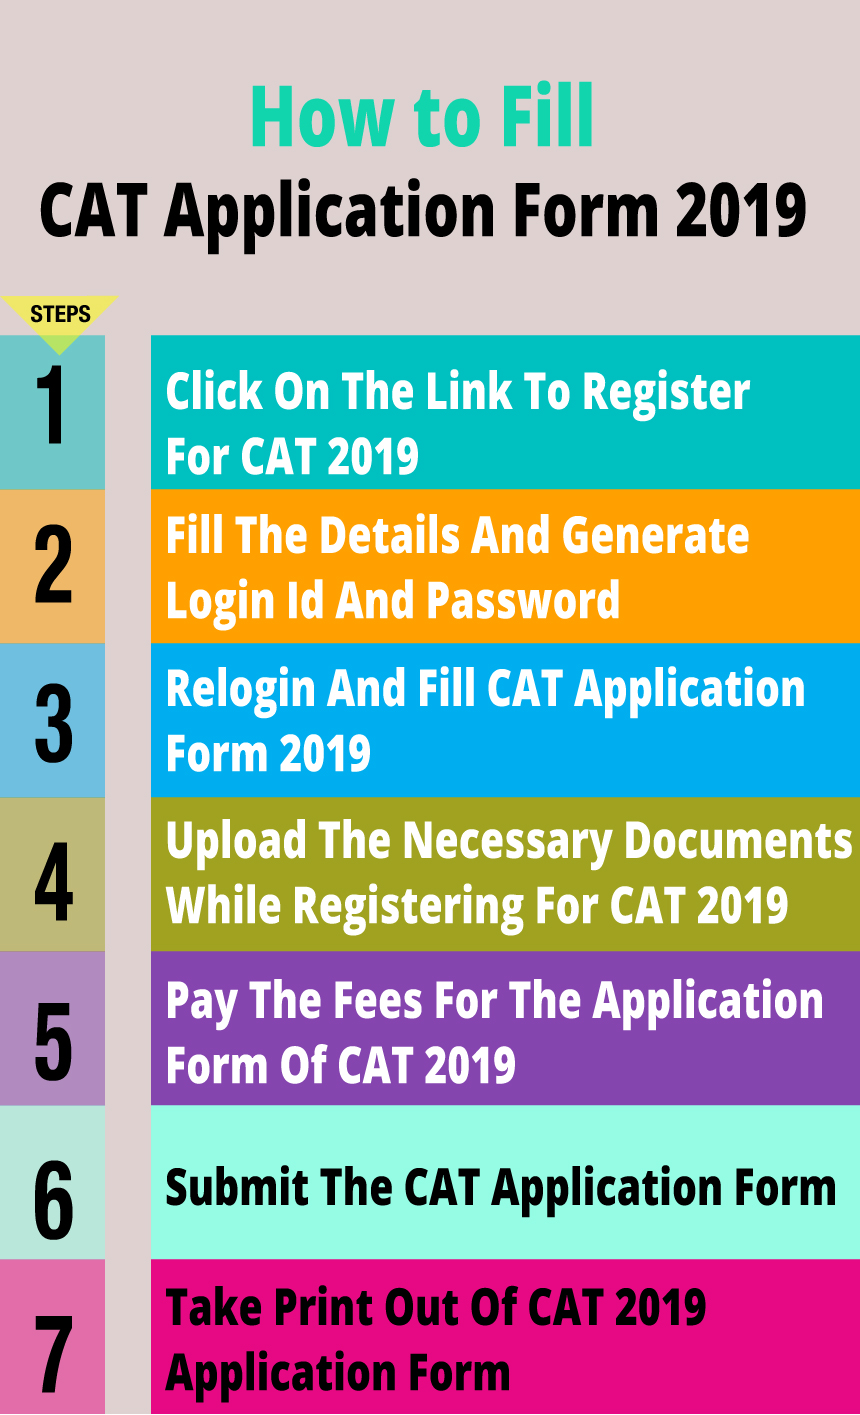 How-to-Fill--CAT-Application-Form-2019-_RC2uzoz